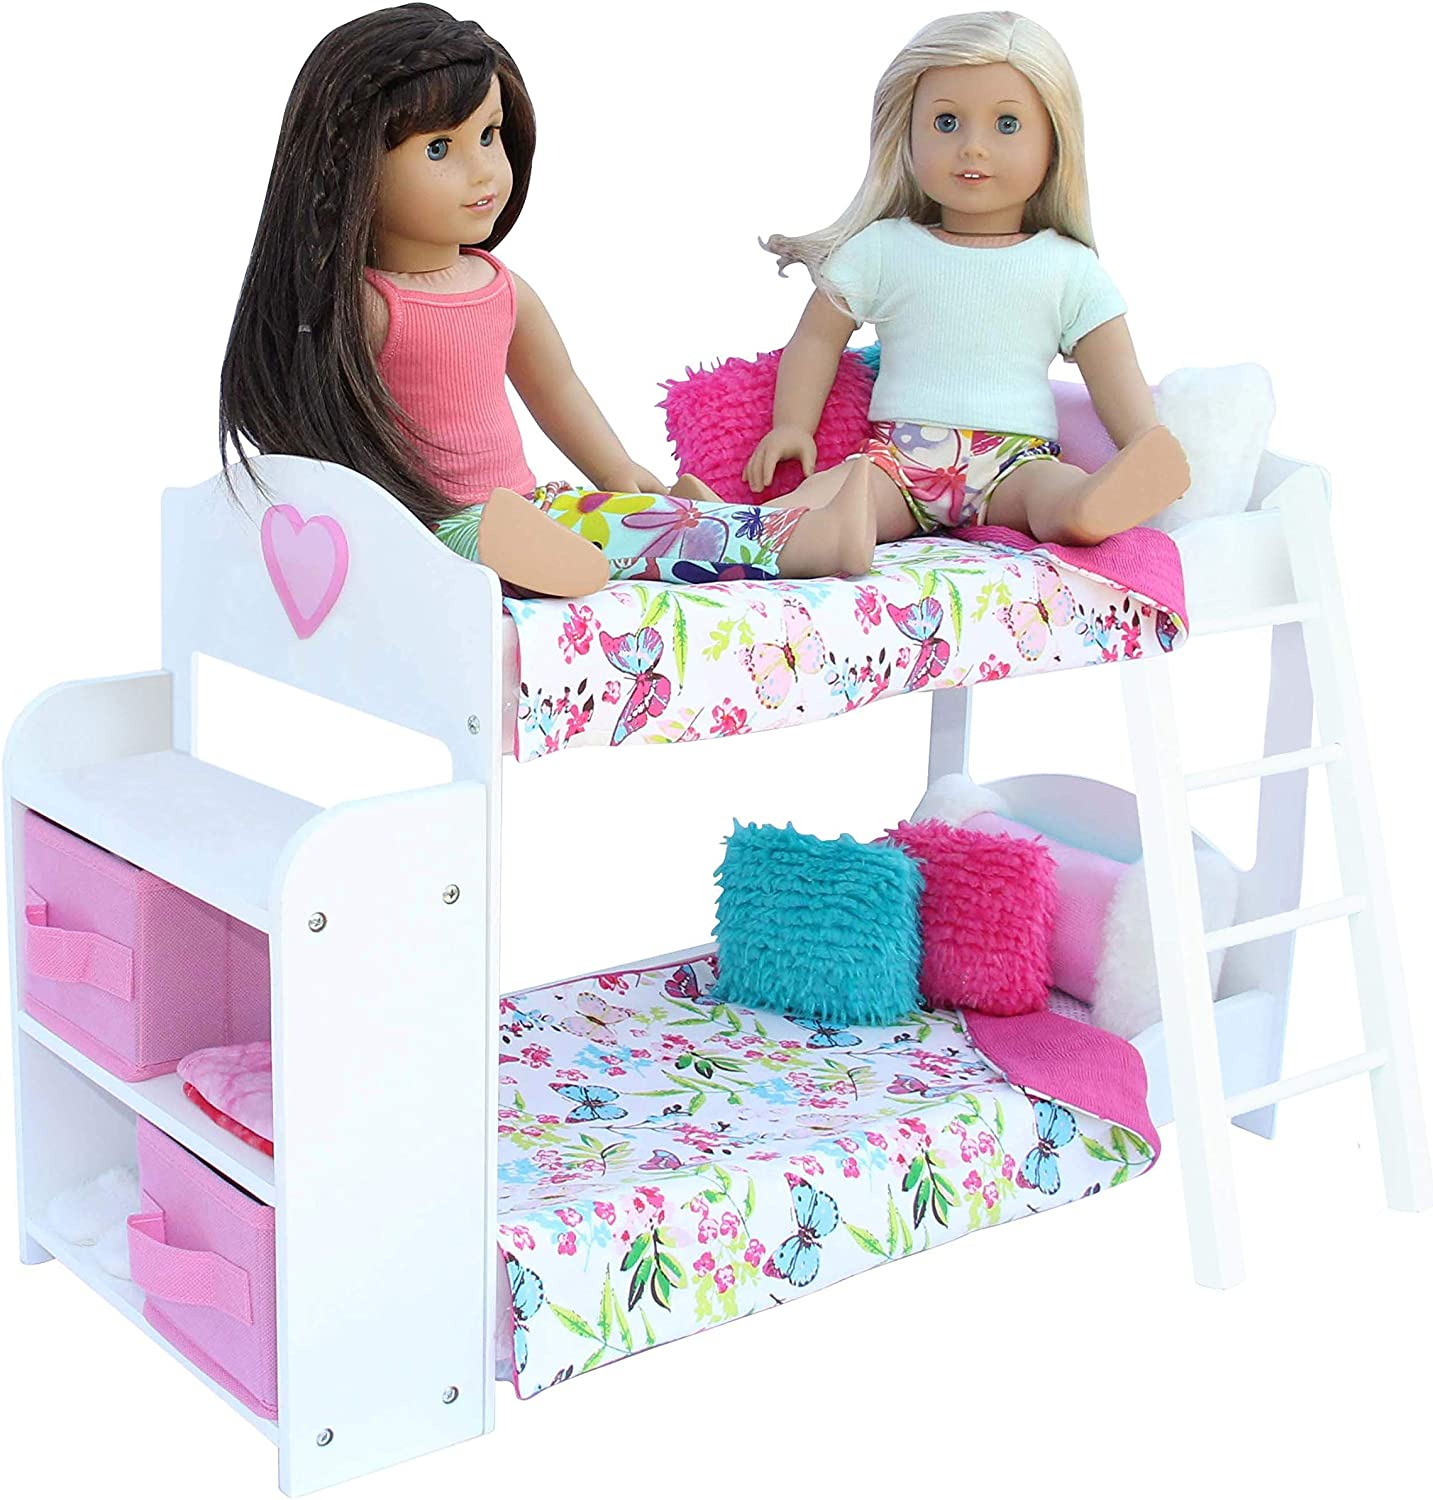 PZAS Toys Doll Bunk price Bed - Comple Inch Dolls for Our shop OFFers the best service 18